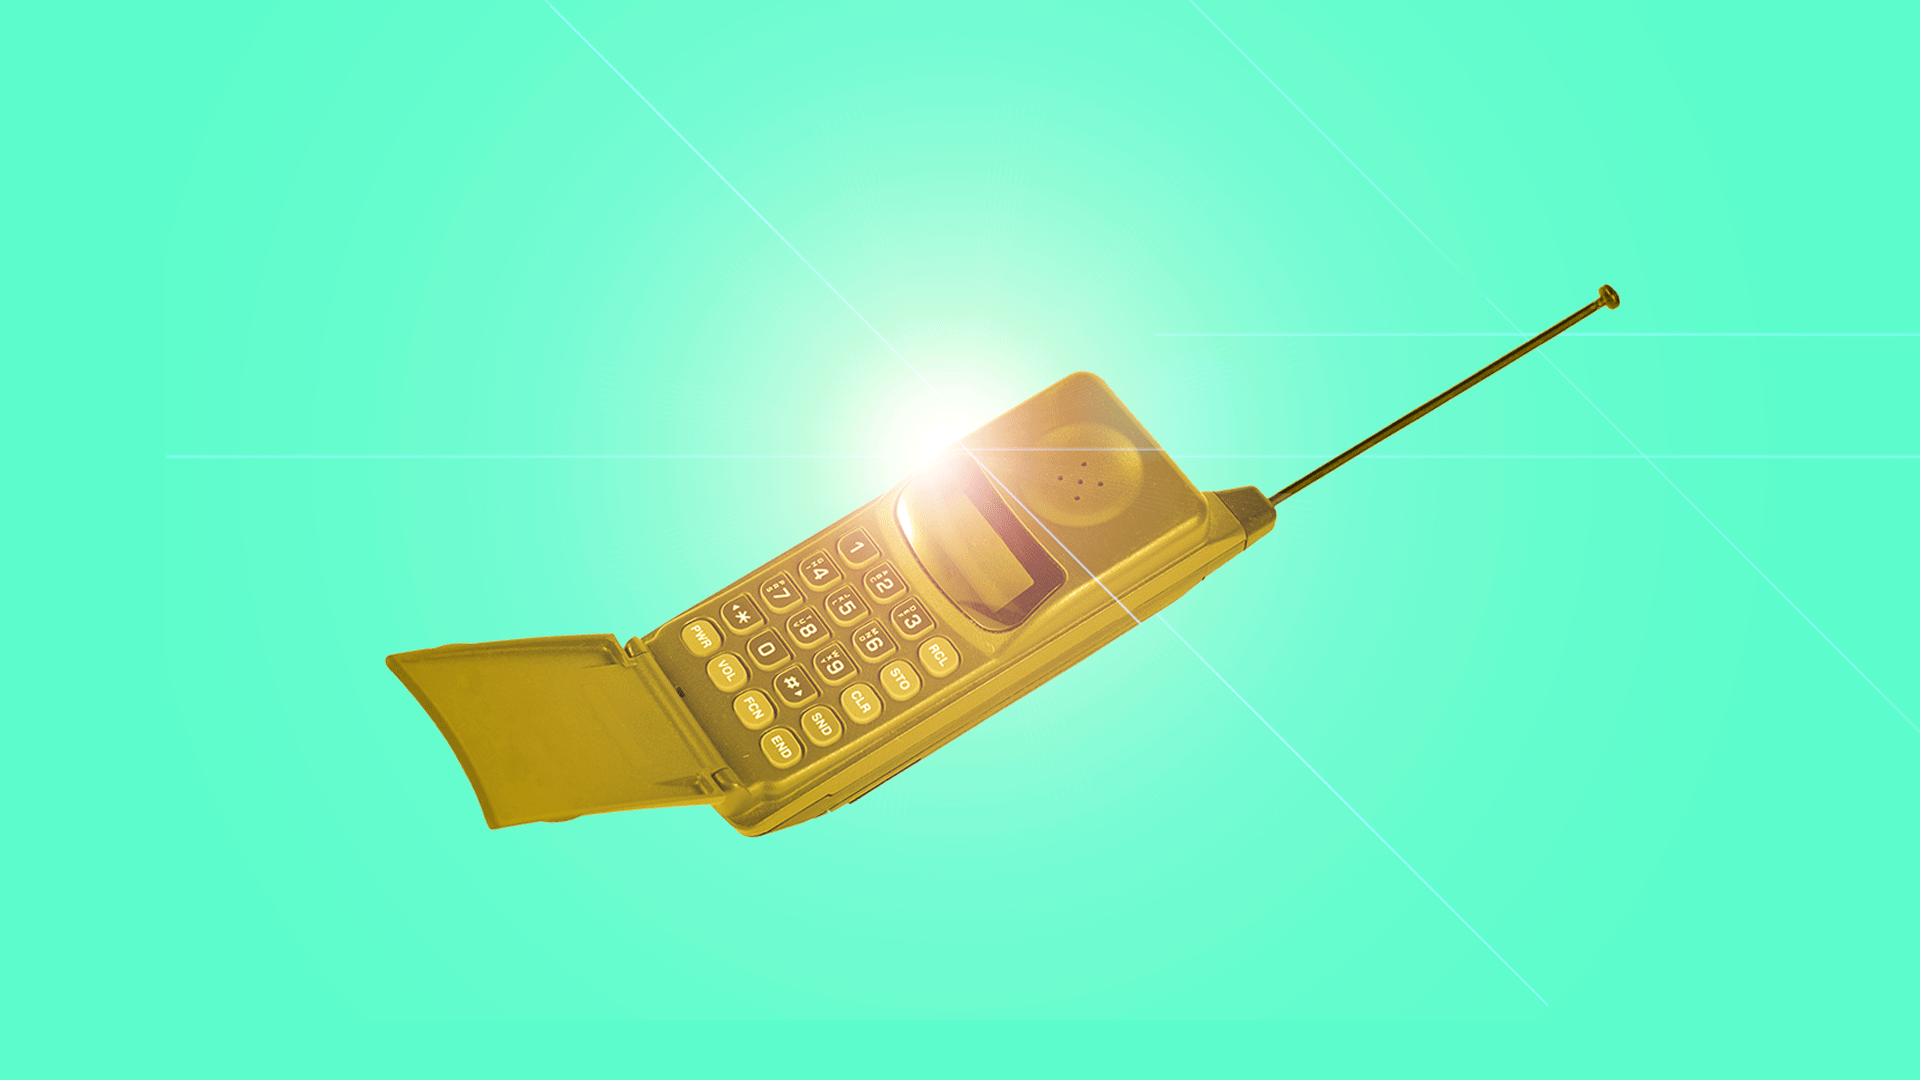 Gold bar cell phone